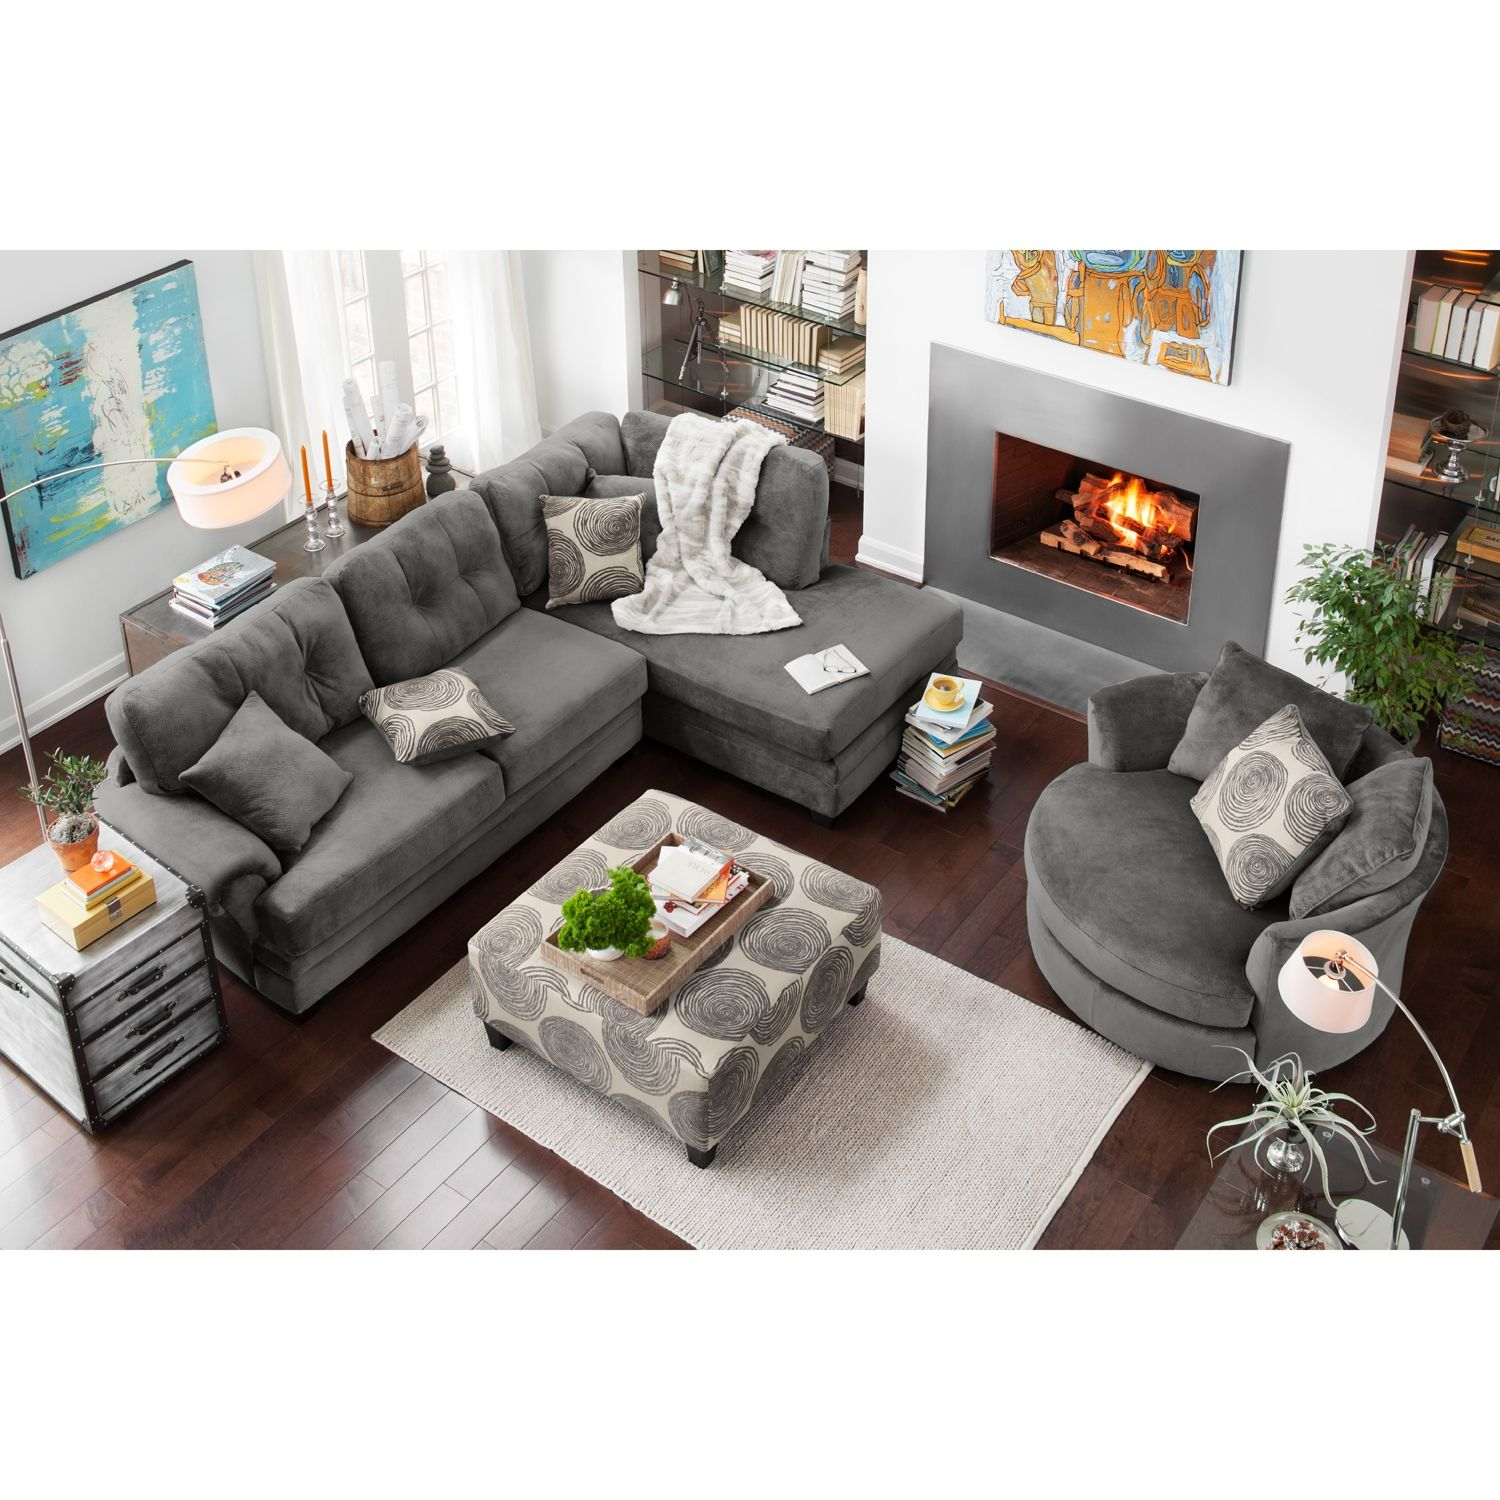 Home City Furniture Set Decoration Mesmerizing Cordelle 2Piece Rightfacing Chaise Sectional  Gray  Value City . Decorating Design